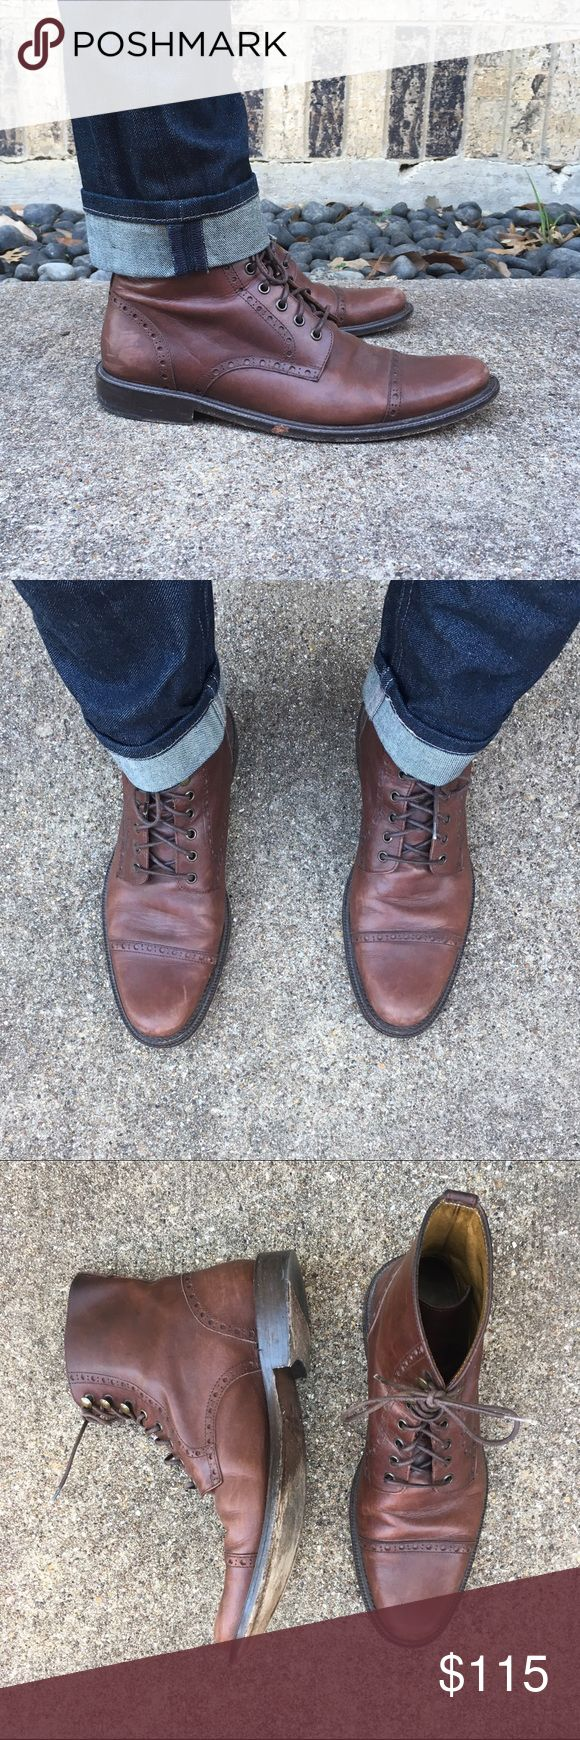 Men's Lace Up Brown Boots Billy Reid Men's Lace Up Brown Boots Billy Reid. Cap toe pattern. All natural leather. Handmade in Italy. Billy Reid Shoes Lace Up Boots